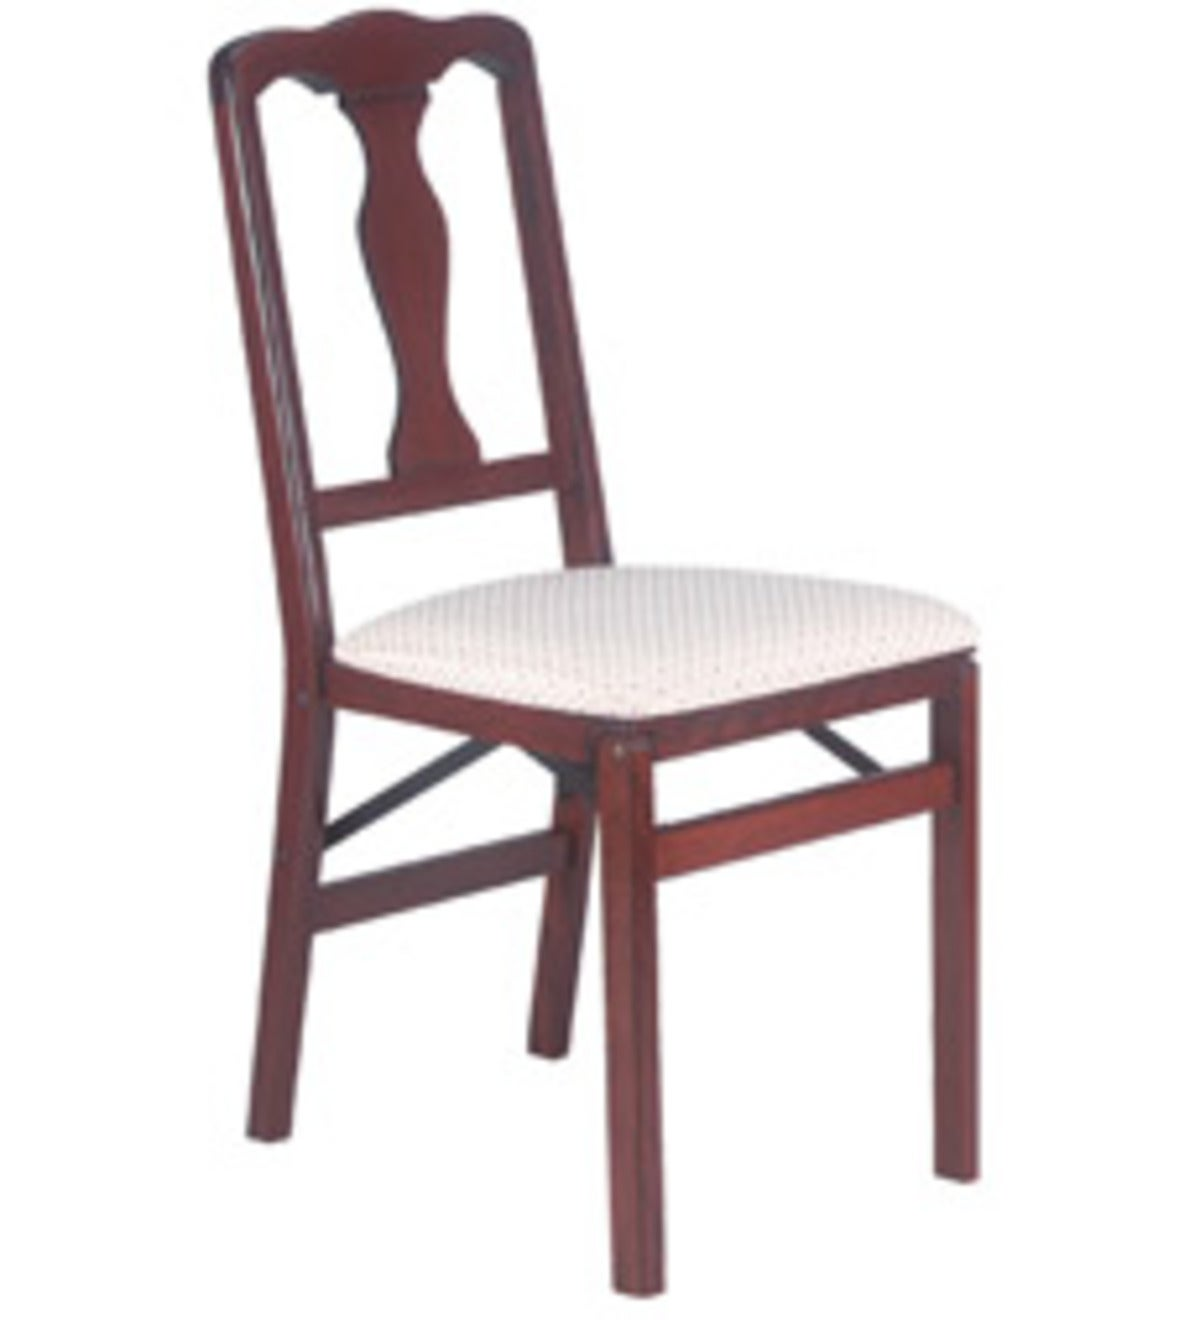 Queen Anne Folding Chair, set of 2 - FRUITWOOD FINISH - Style=EVERGREEN